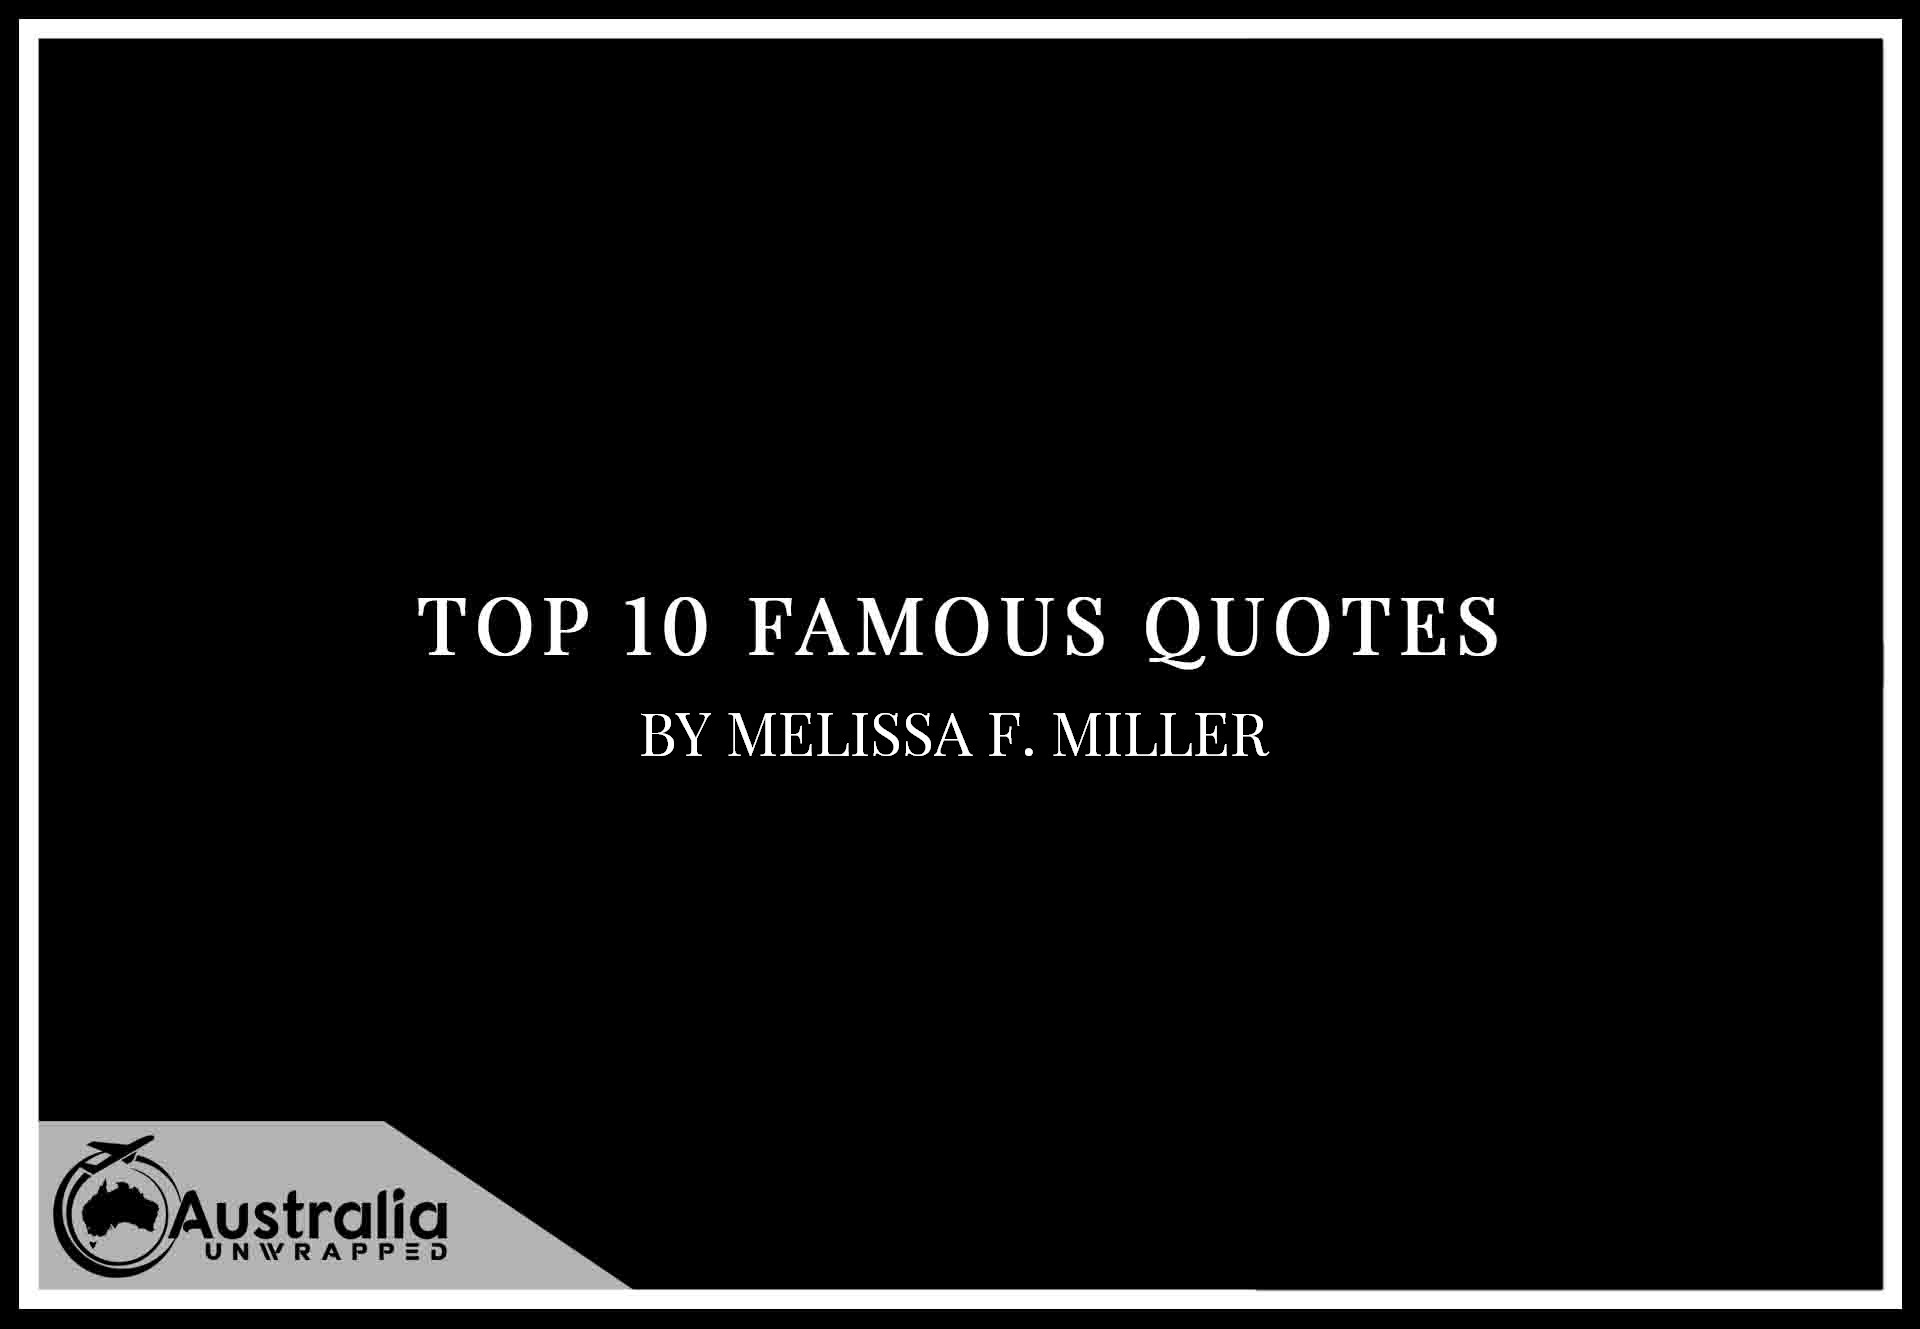 Top 10 Famous Quotes by Author Melissa F. Miller